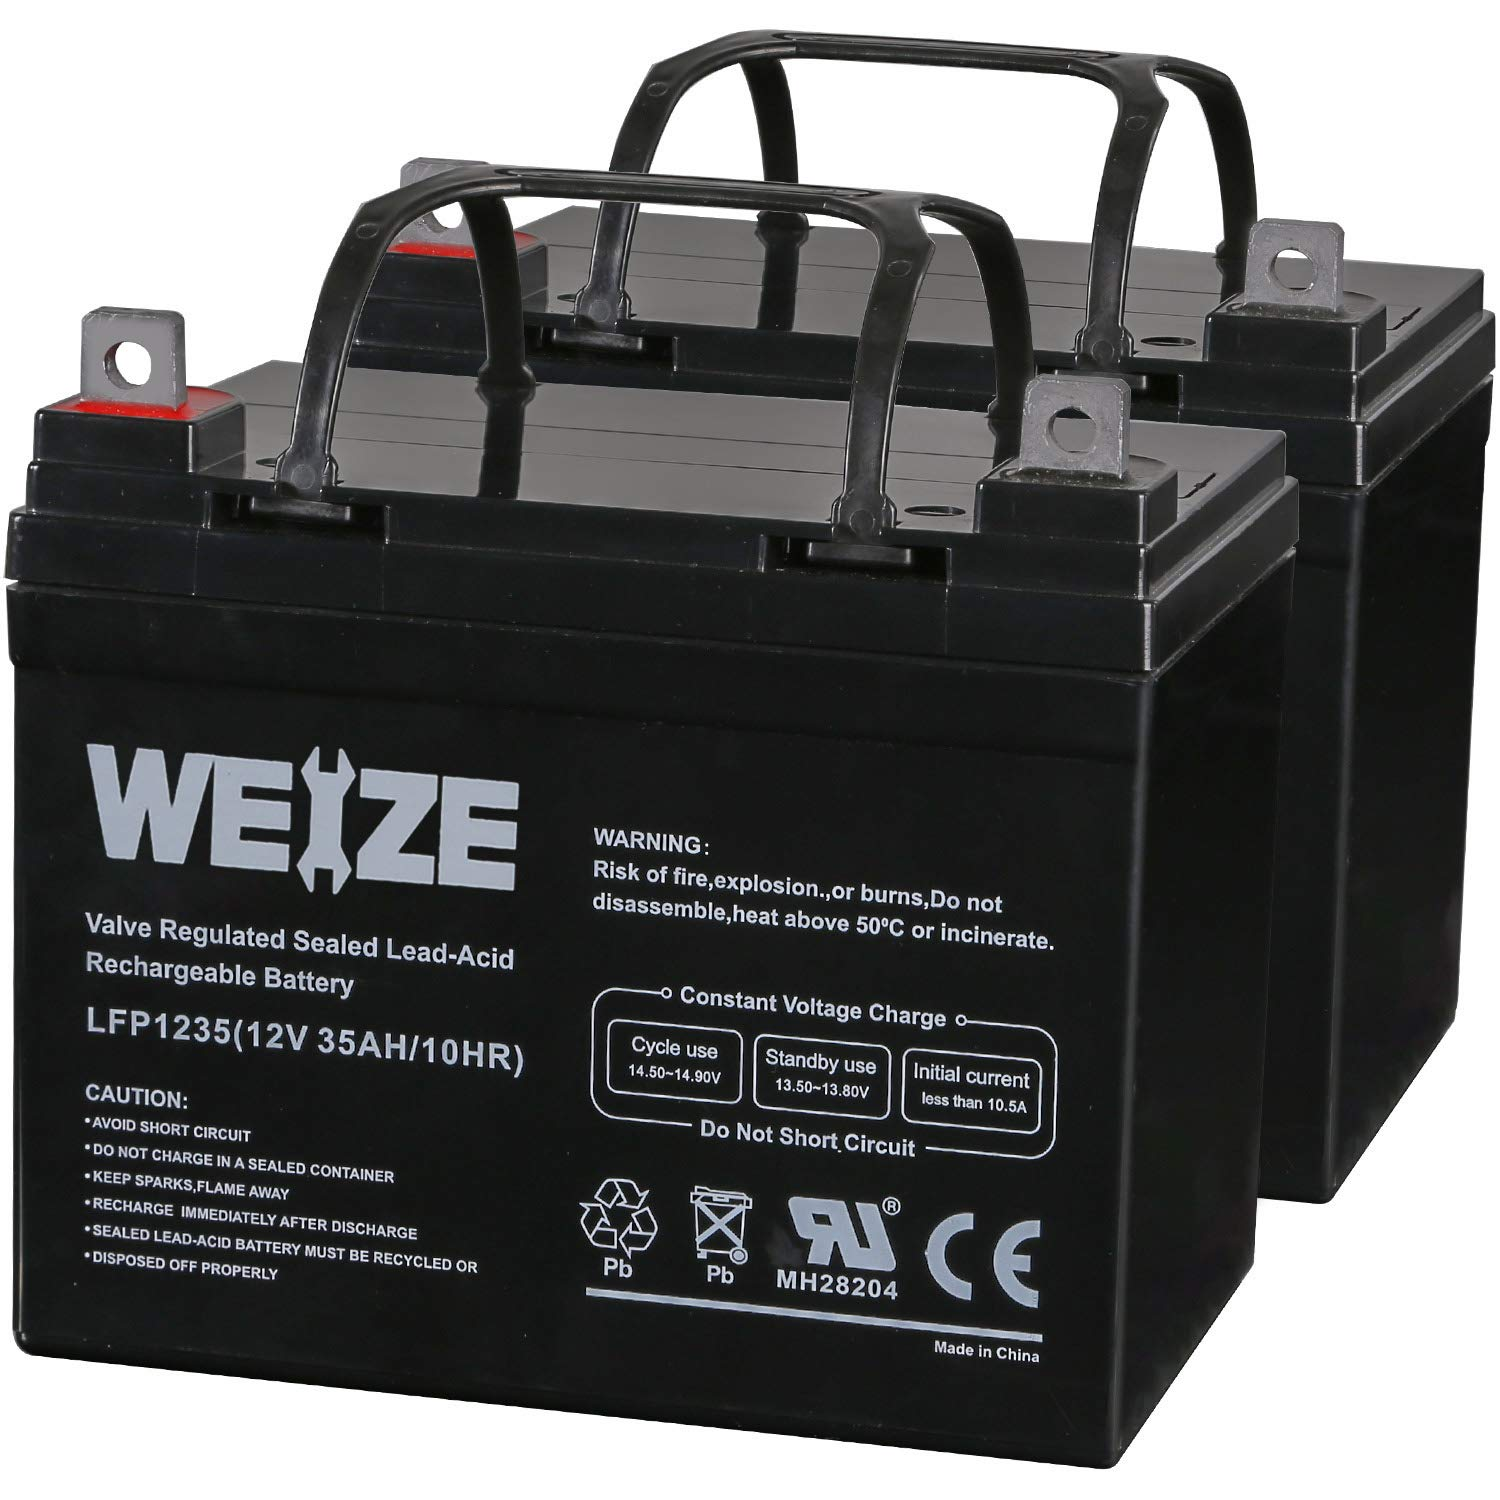 Weize 12V 35AH Deep Cycle Battery for Scooter Pride Mobility Jazzy Select Electric Wheelchair - 2 Pack in Series 24V by WEIZE